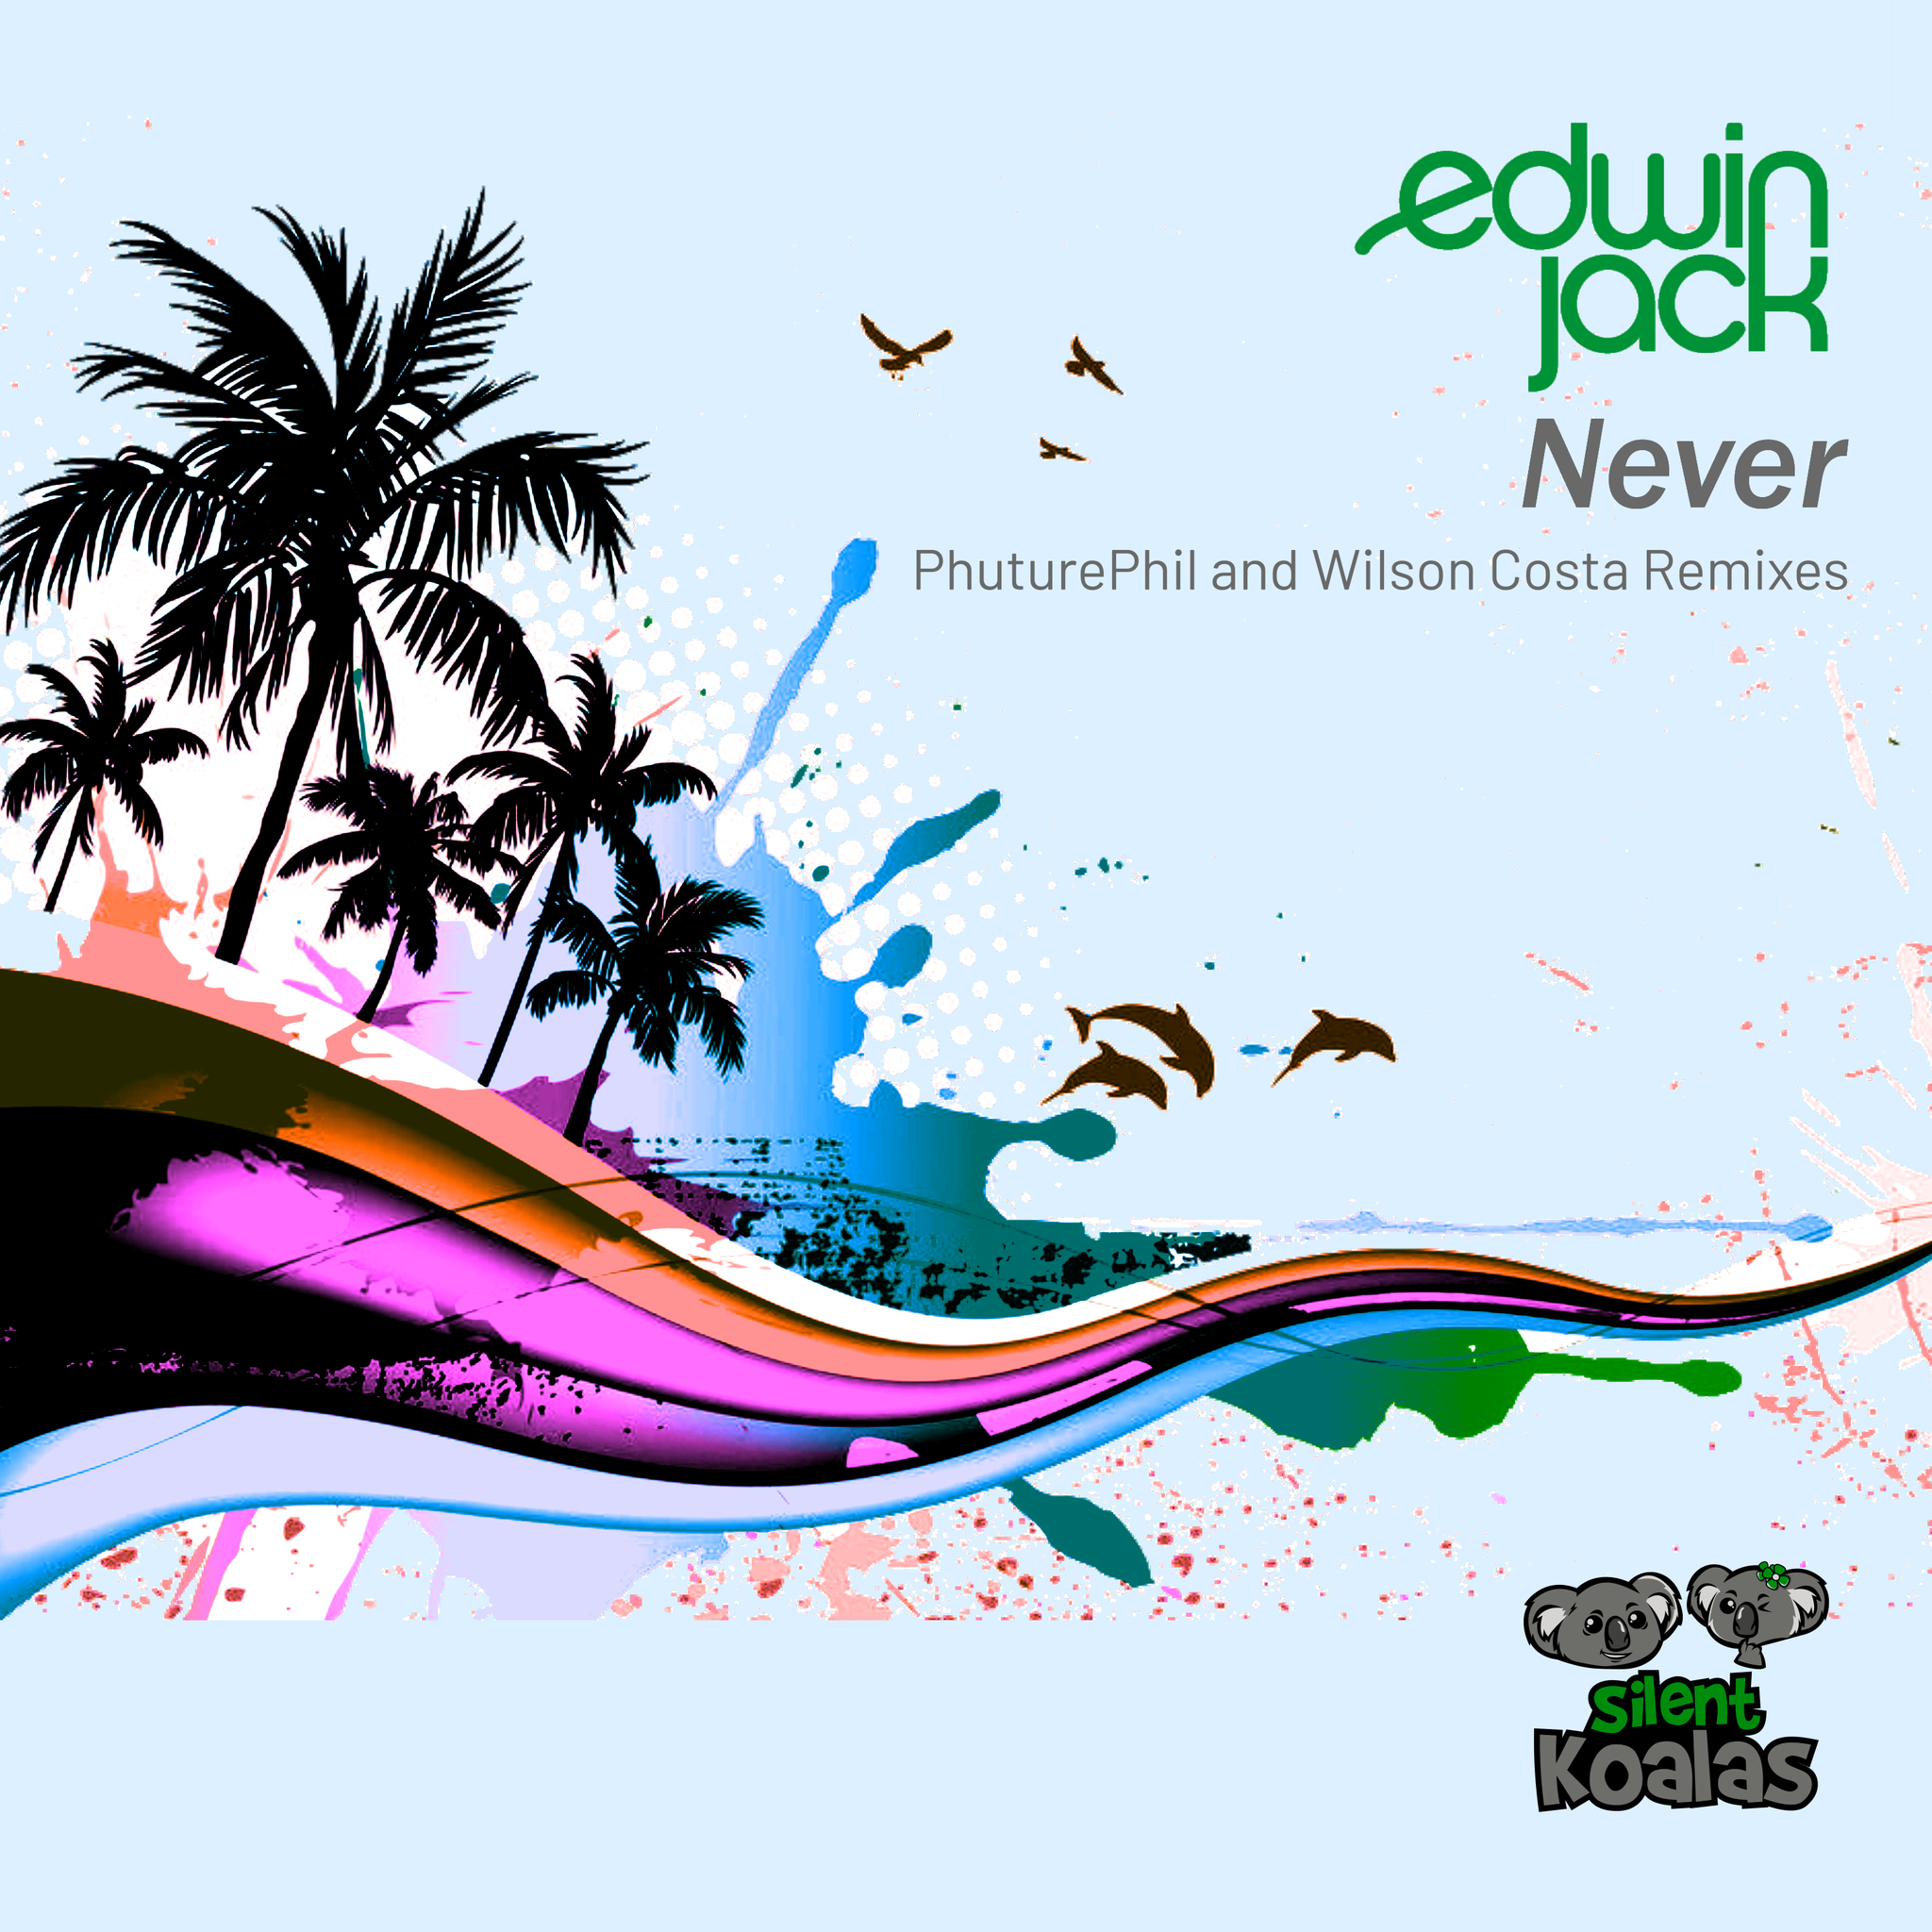 Bright and summery cover artwork for the Edwin Jack Remixes EP